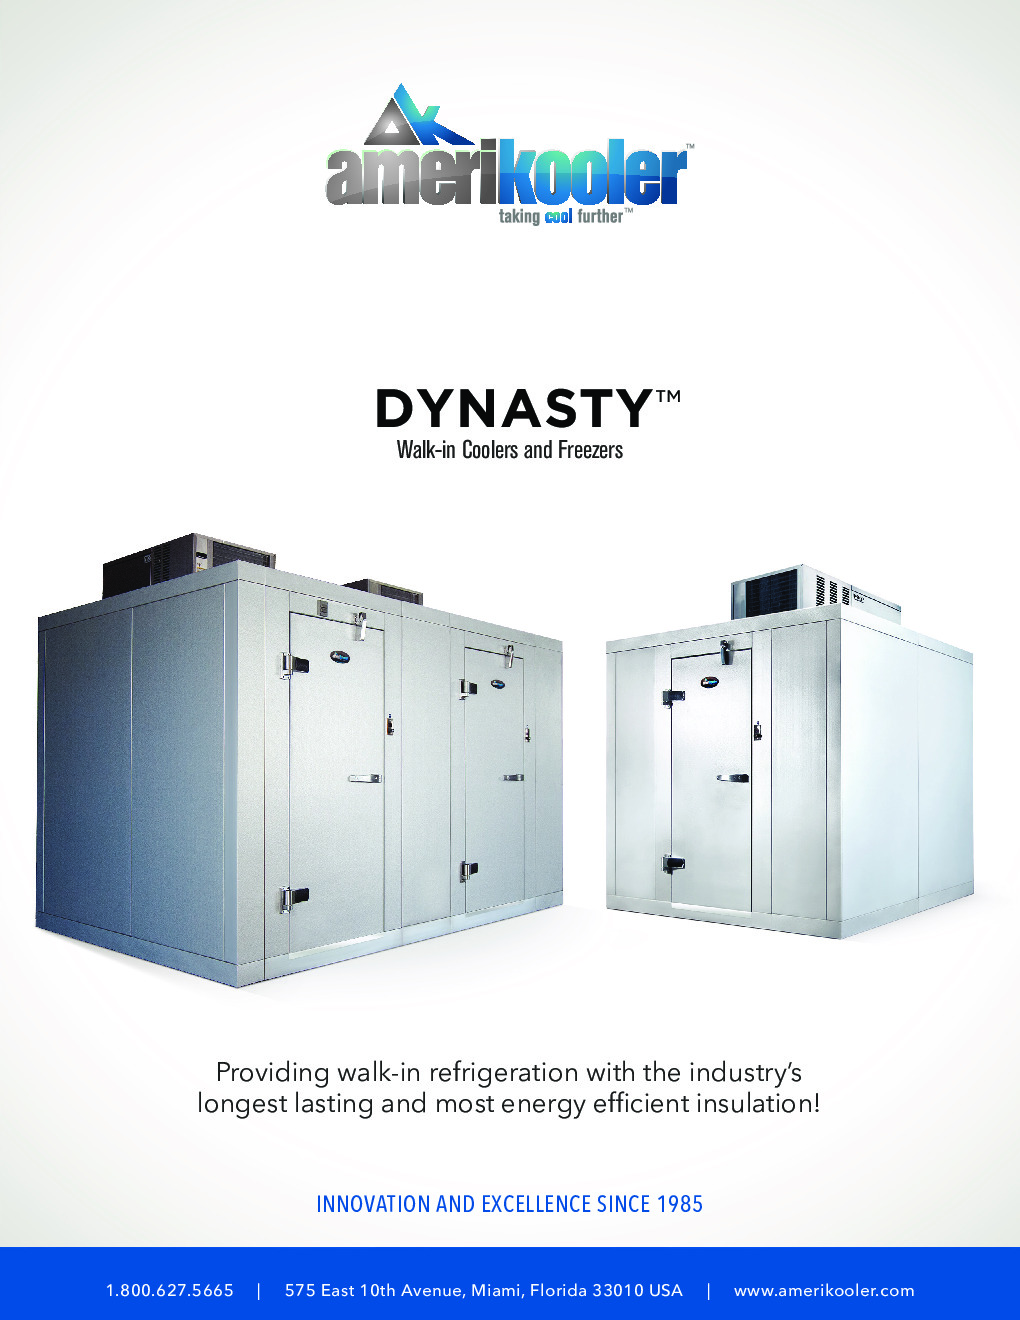 AmeriKooler DW081877N-9/9-SC 8' X 18' Walk-In Cooler, 9' L Cooler without Floor and 9' L Freezer, Self Contained